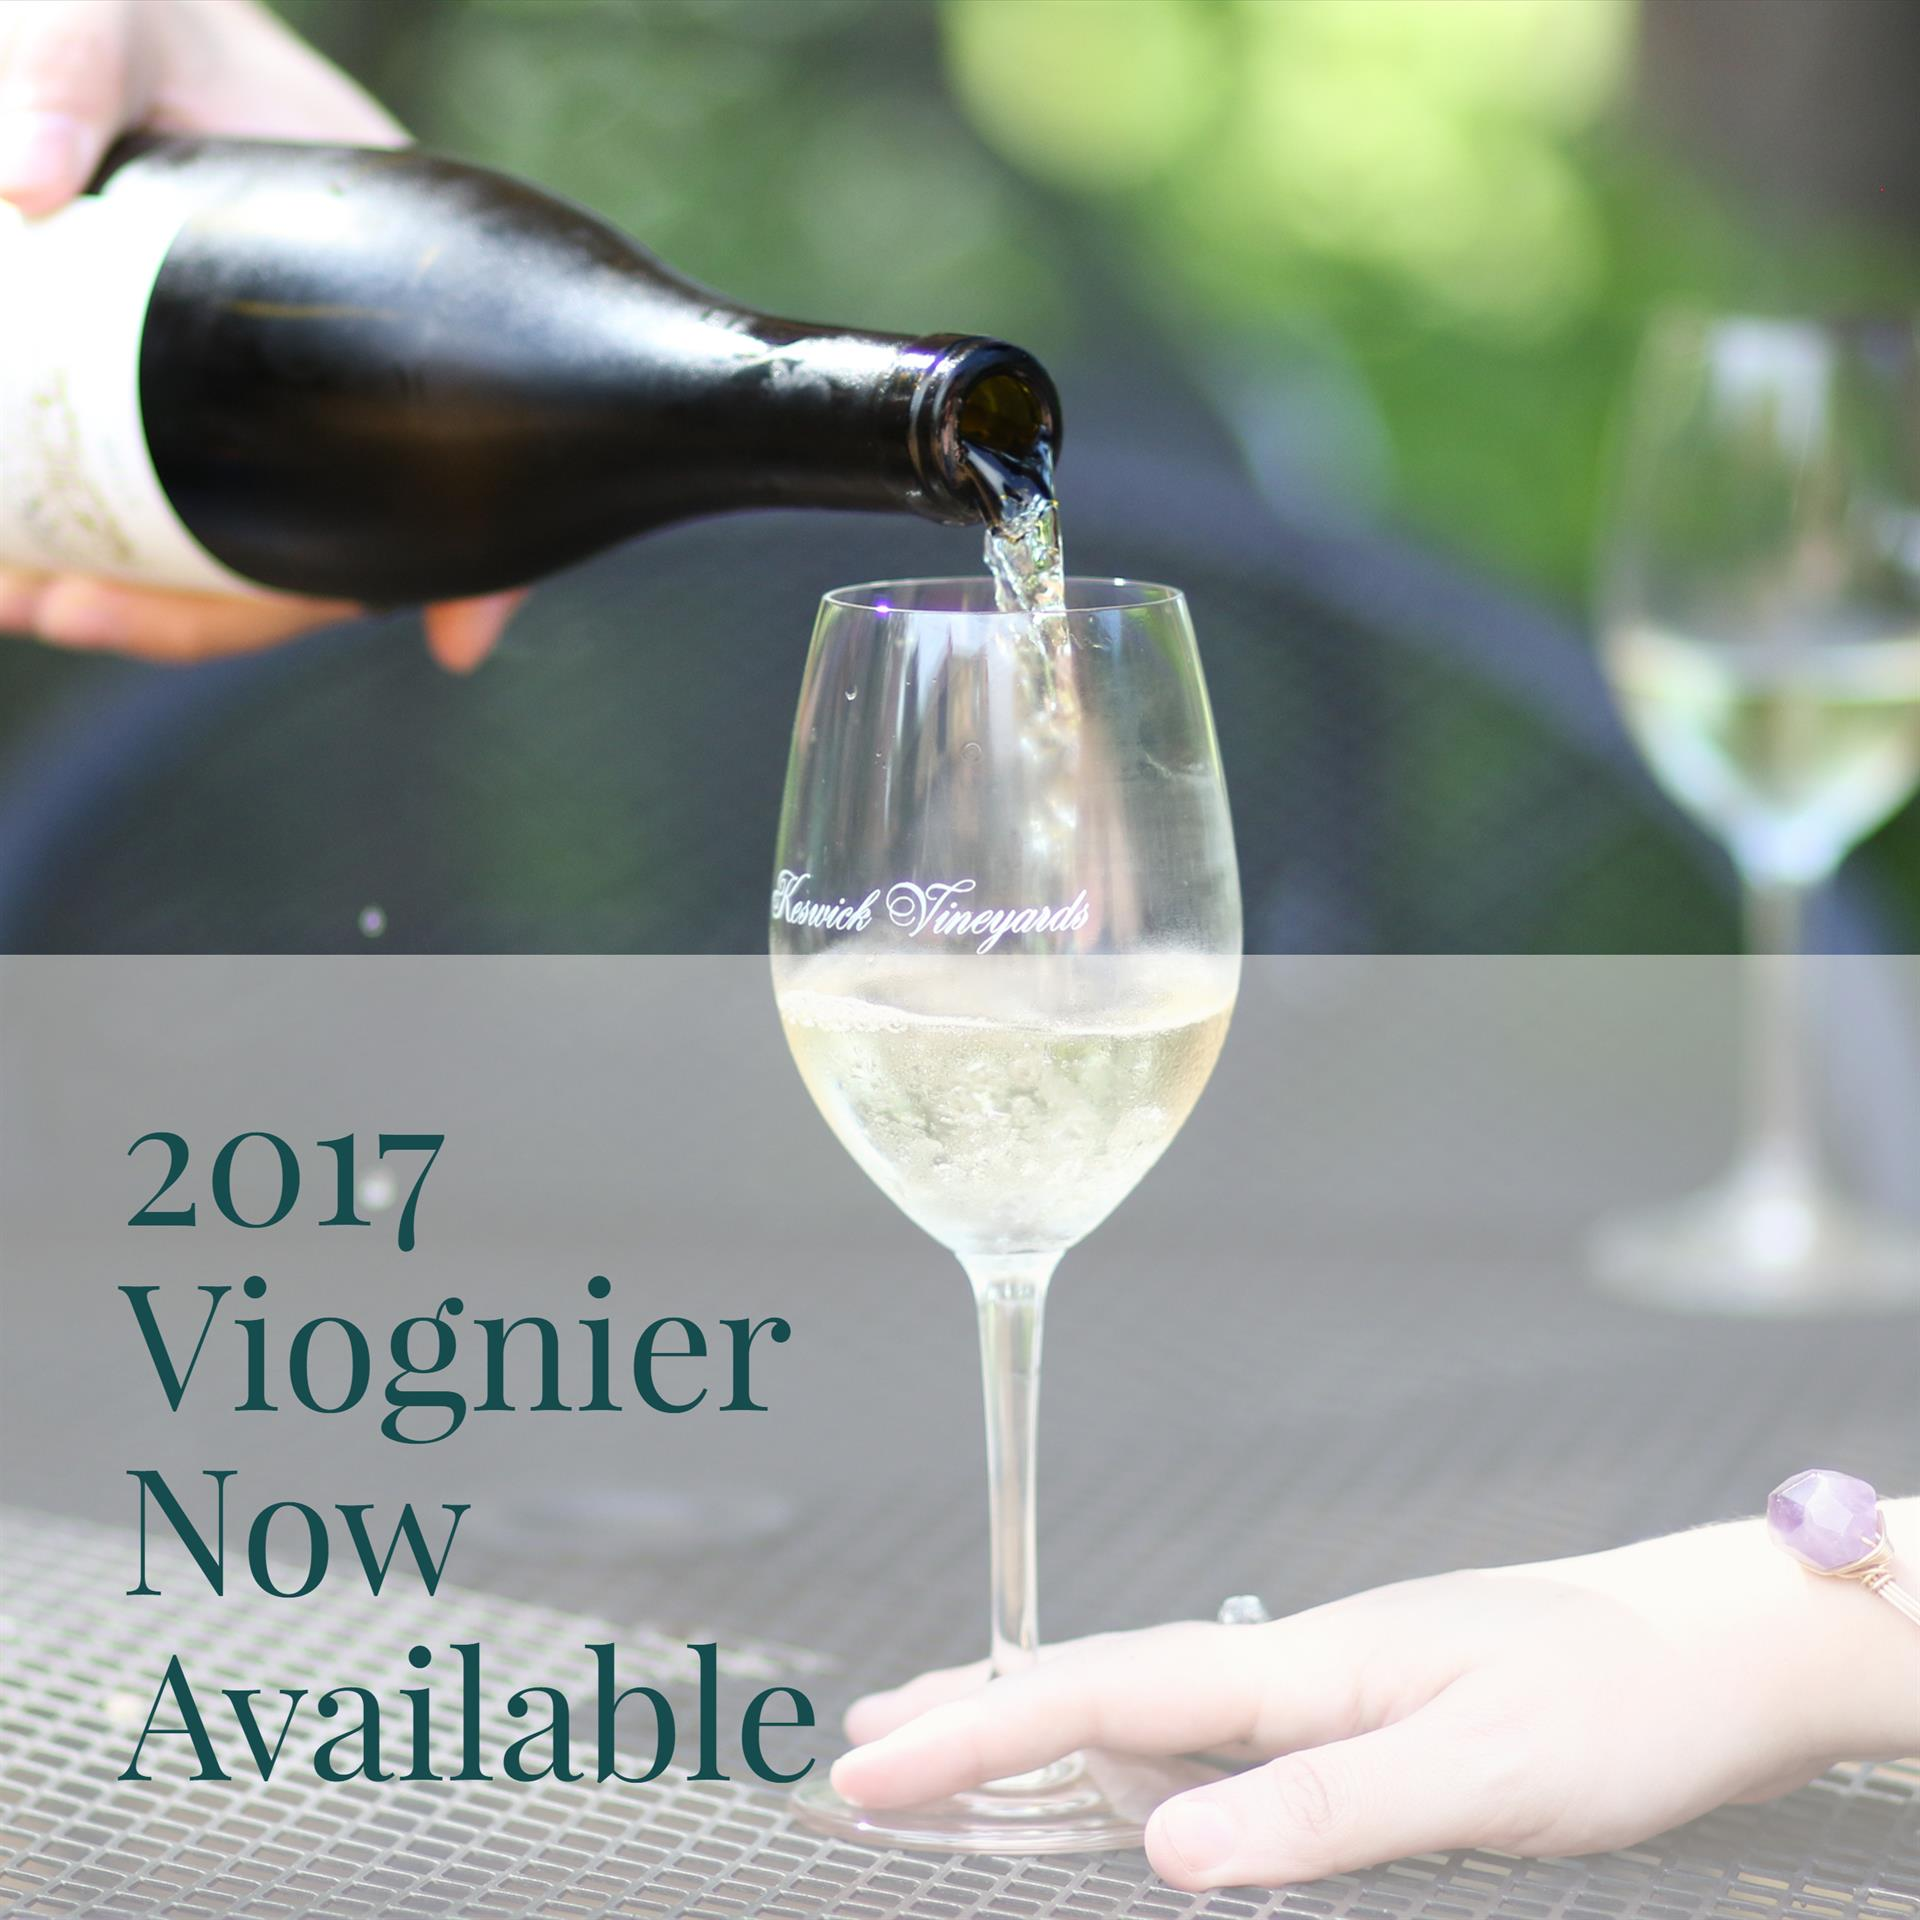 2017 Viognier now available